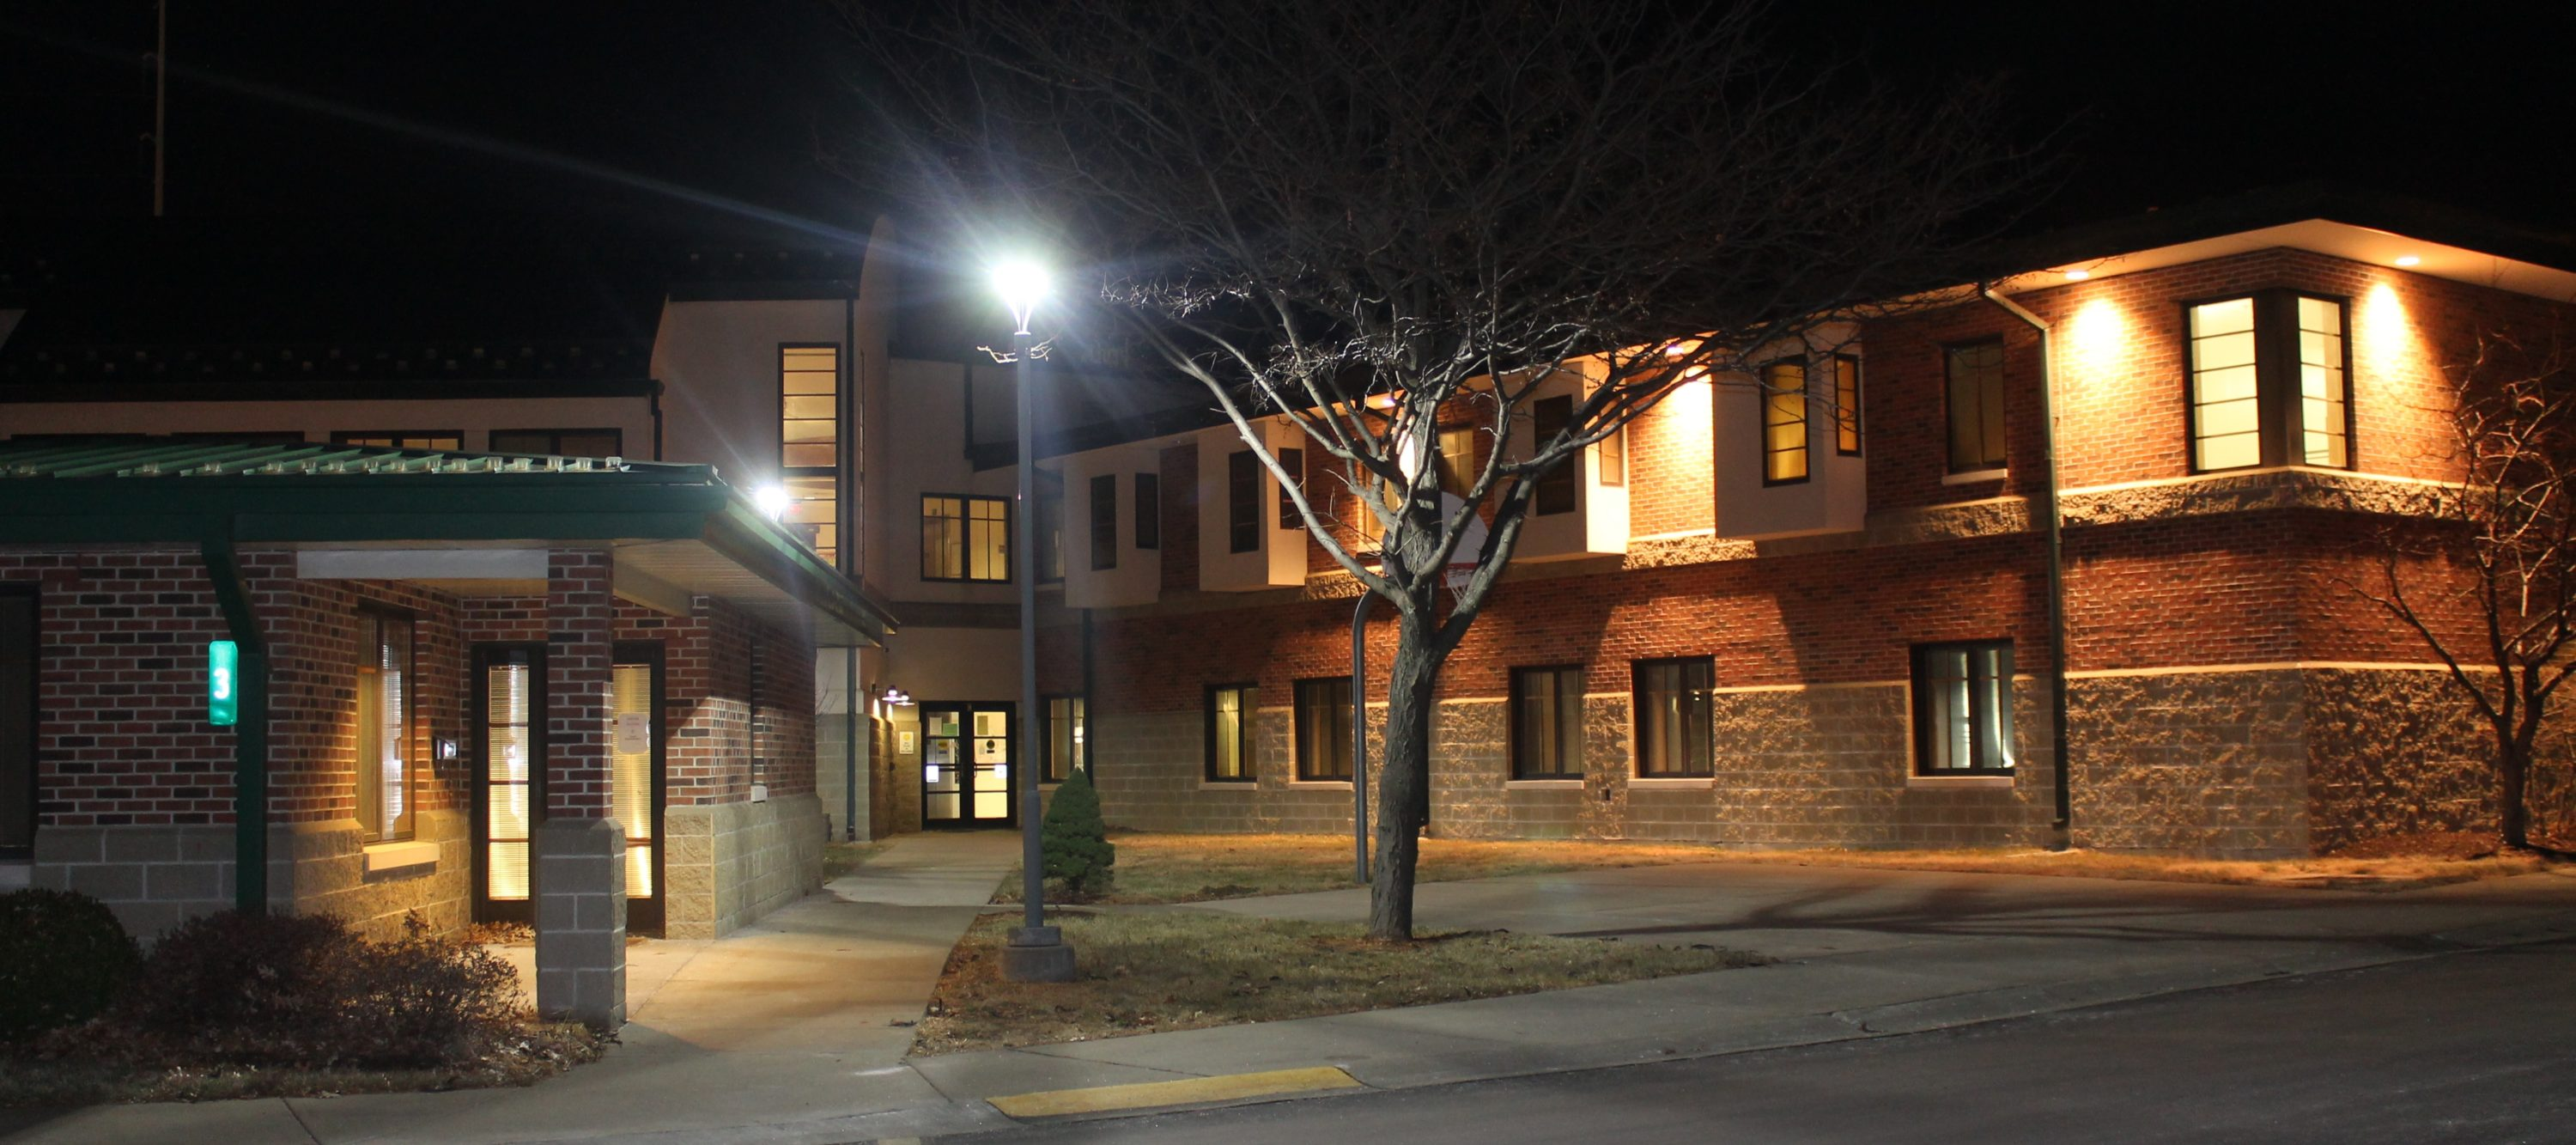 Residence Hall at Night. A large 2 story building with 2 trees and a light pole in front. Light from windows and outdoor lighting shine in the darkness.